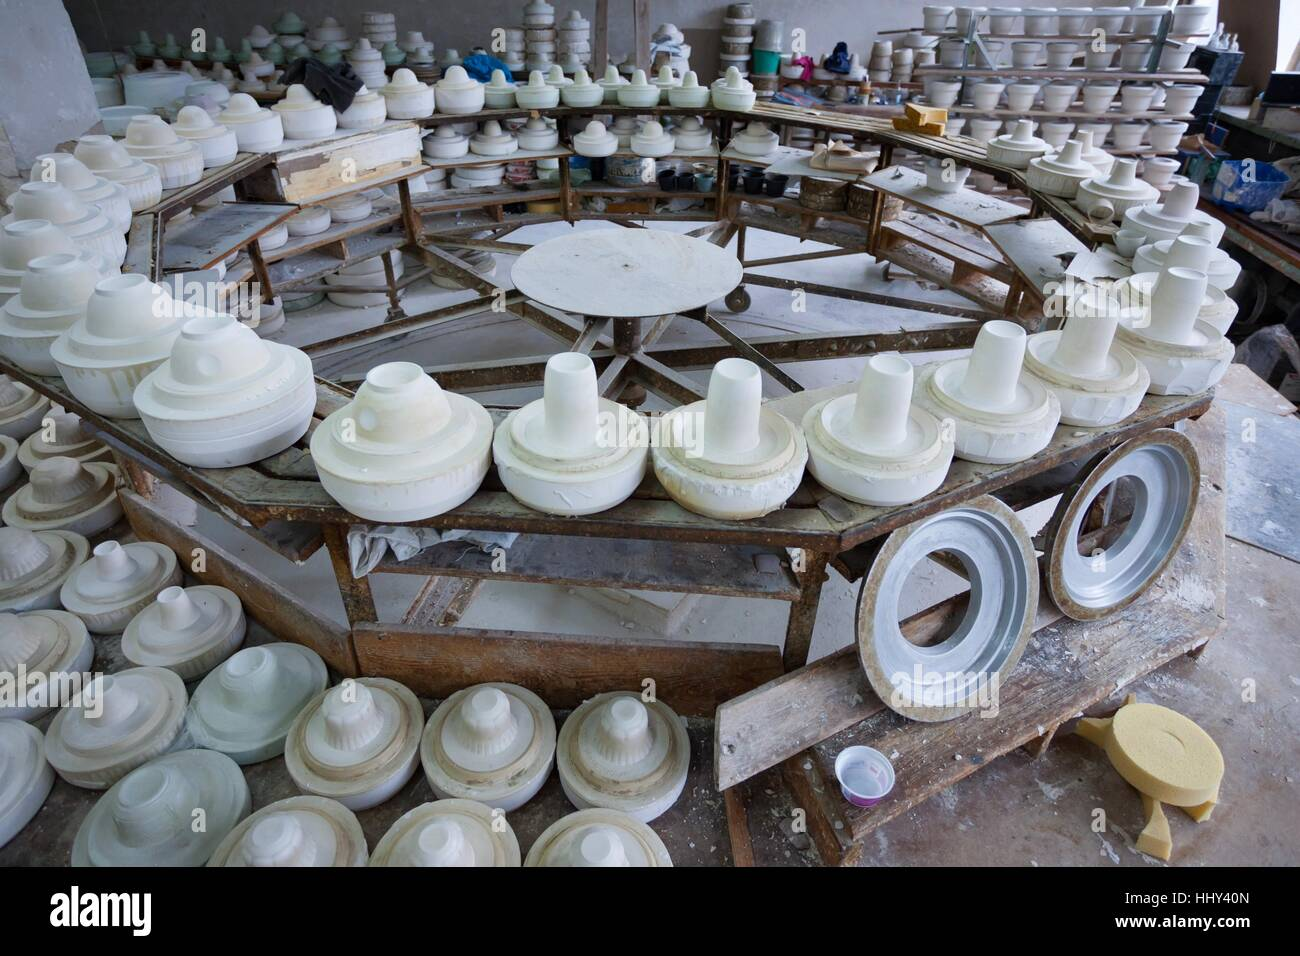 Chodziez, Poland - March 19, 2012 The factory produces porcelain. Stock Photo